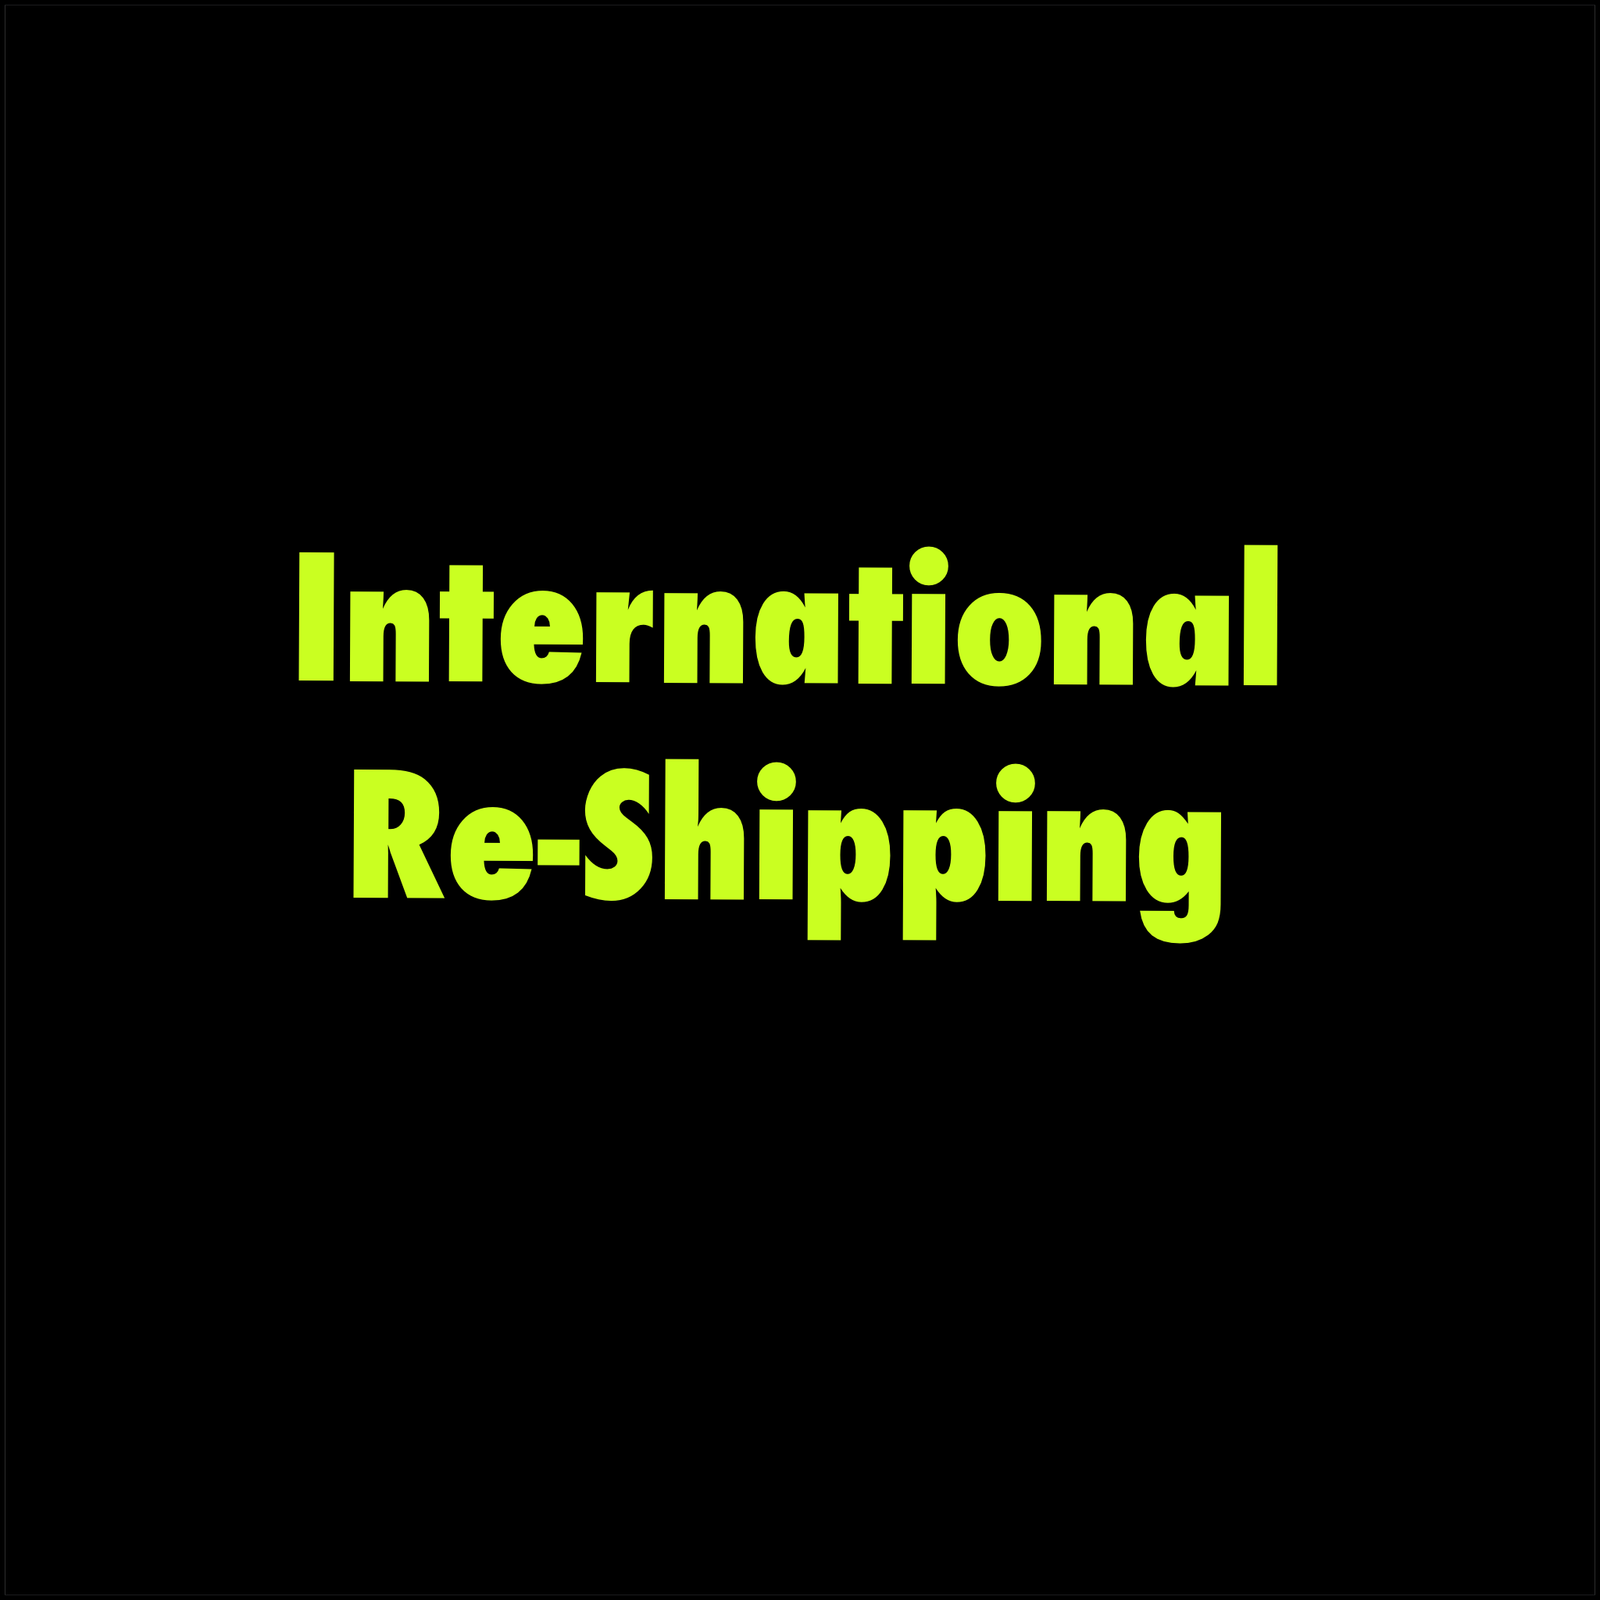 International Re-Shipping